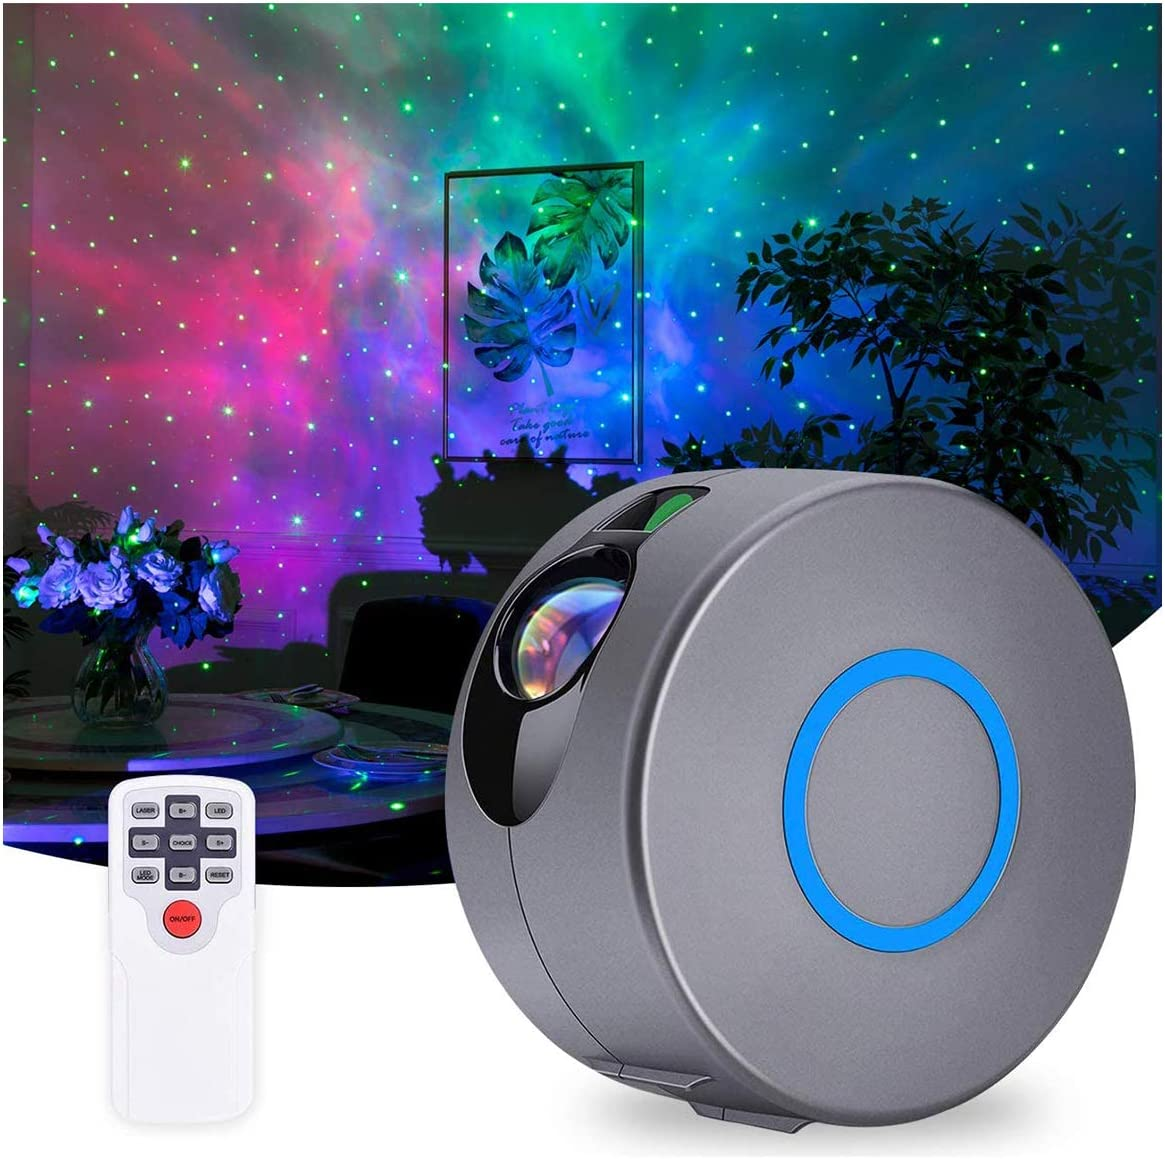 Galaxy Projector with Nebula Cloud, Remote Control Star Projector Skylight Upgrade 7 Nebula Colors 15 Lighting Modes, Night Light Projector Lights for Bedroom Decor for Baby, Kids,Adults (Black)